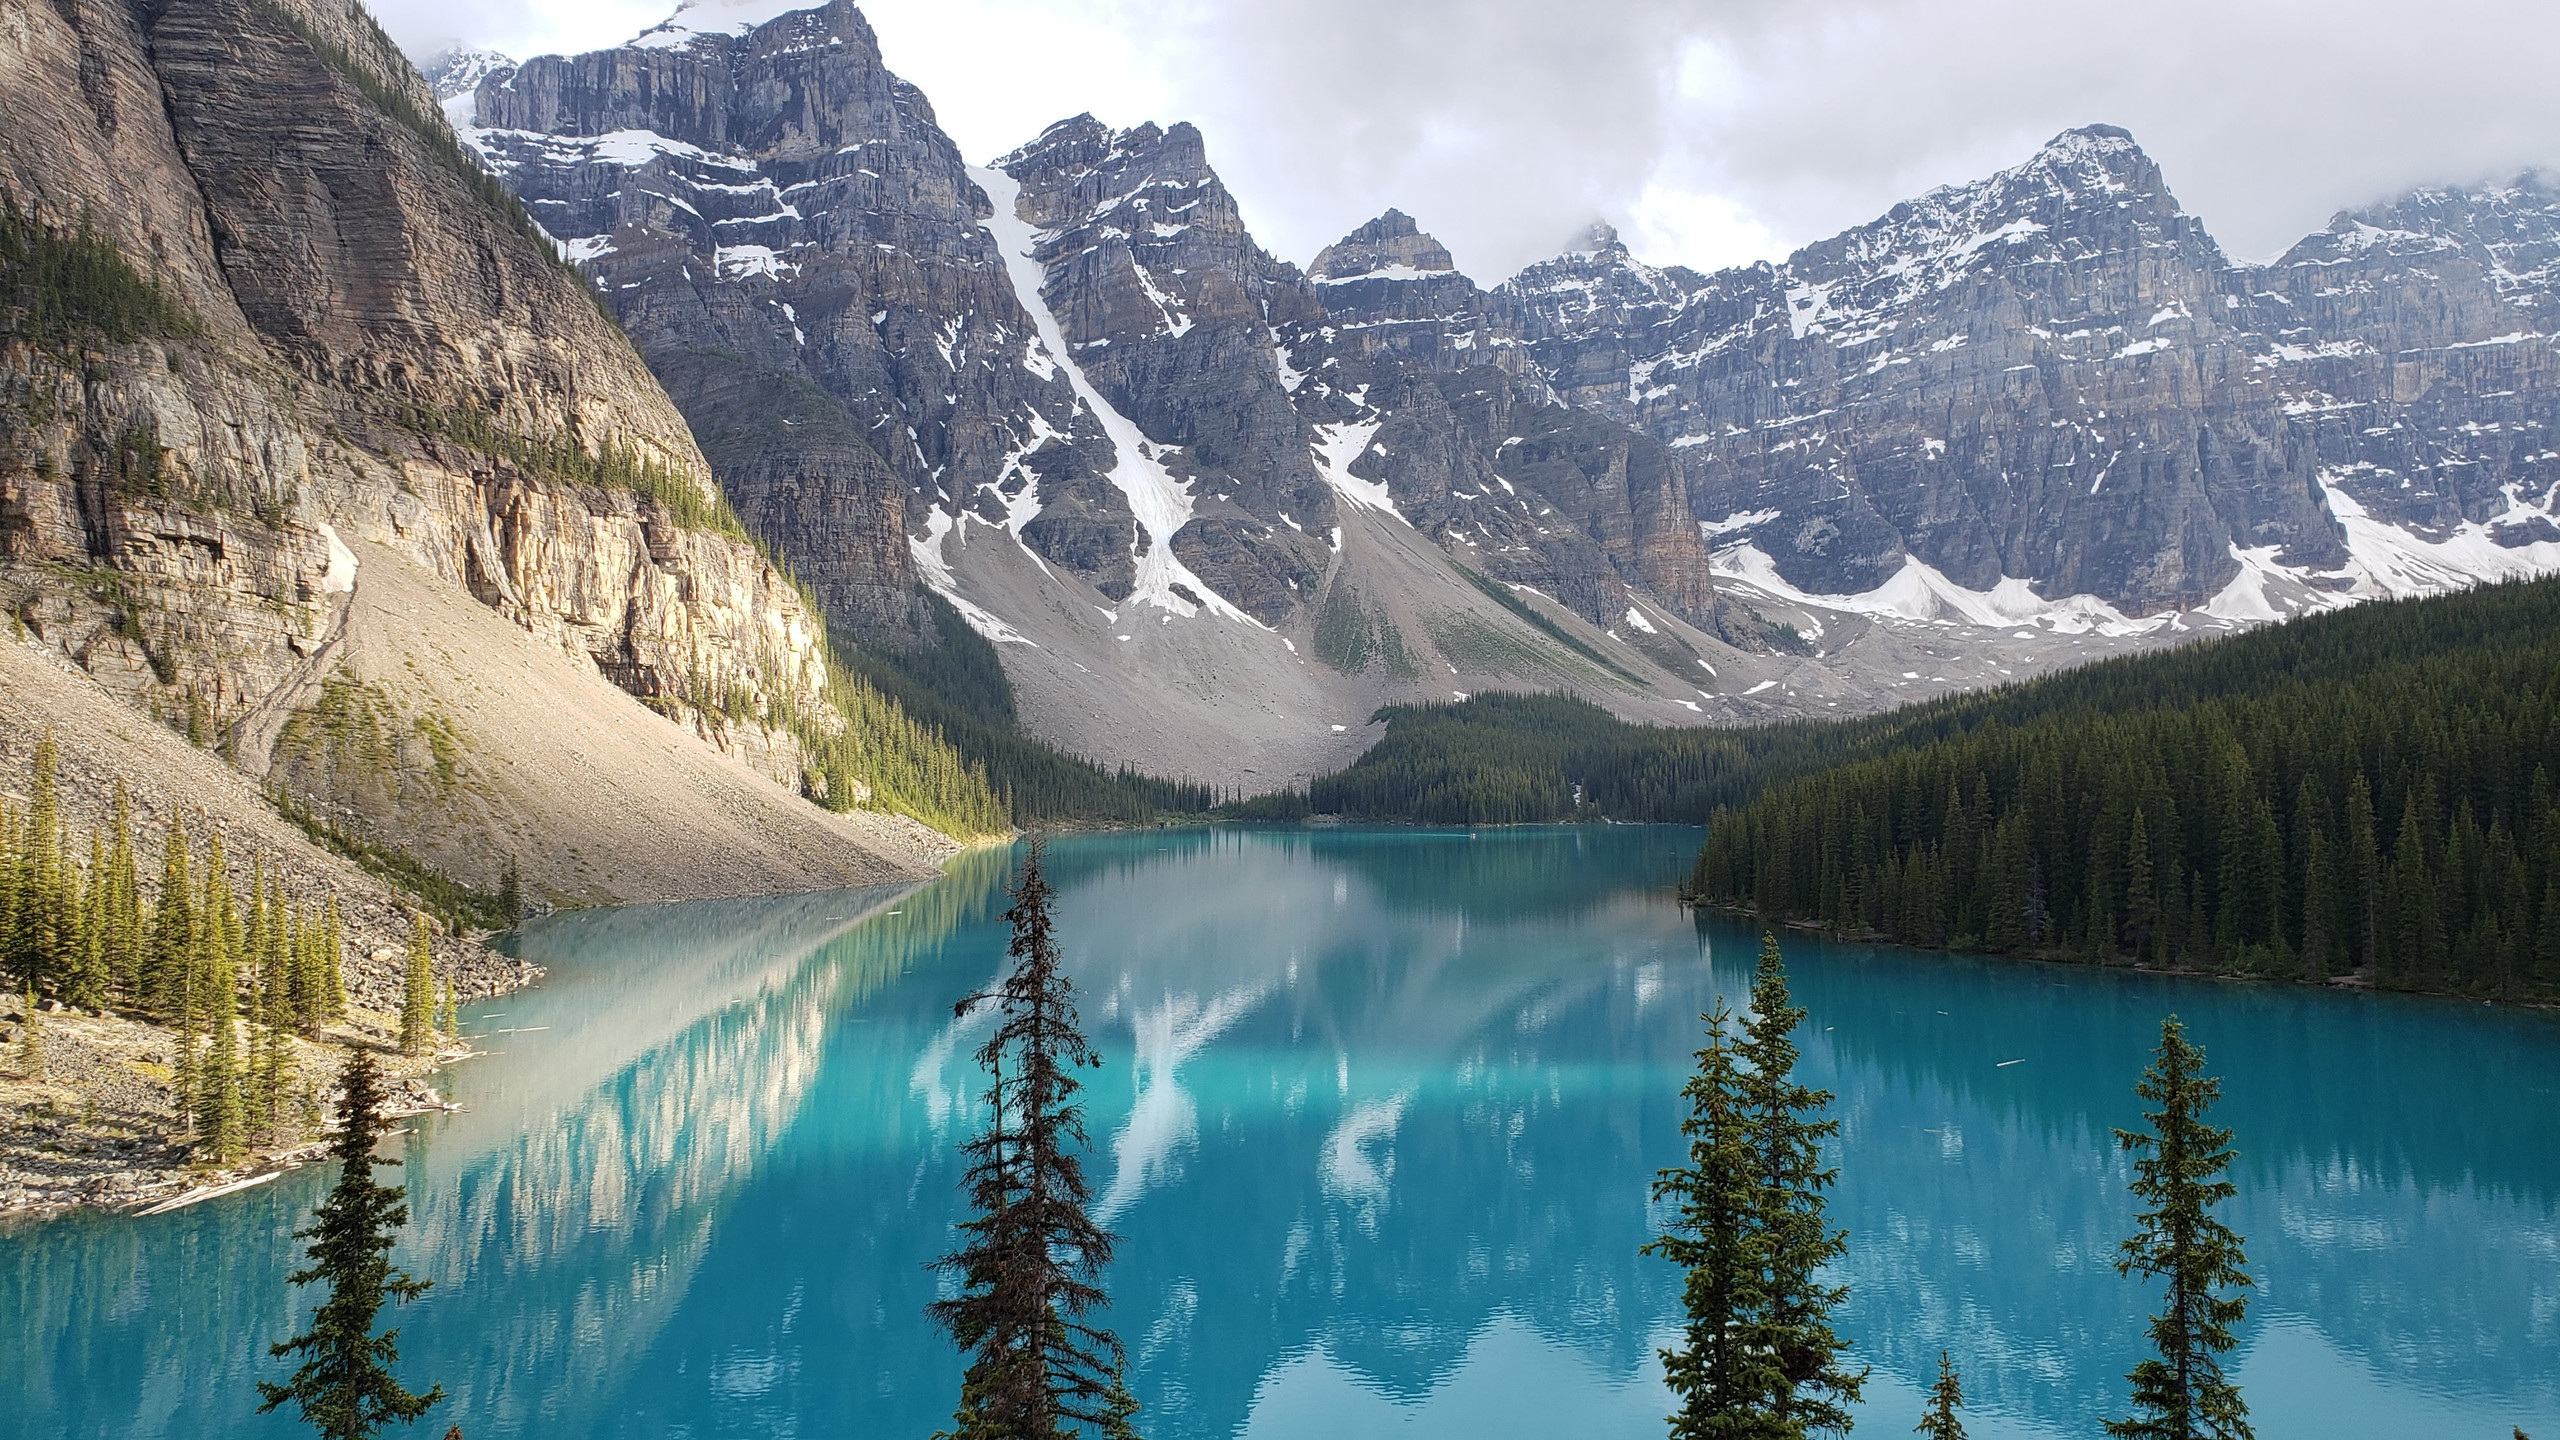 The most beautiful and popular lake in the Canadian Rockies, Moraine Lake